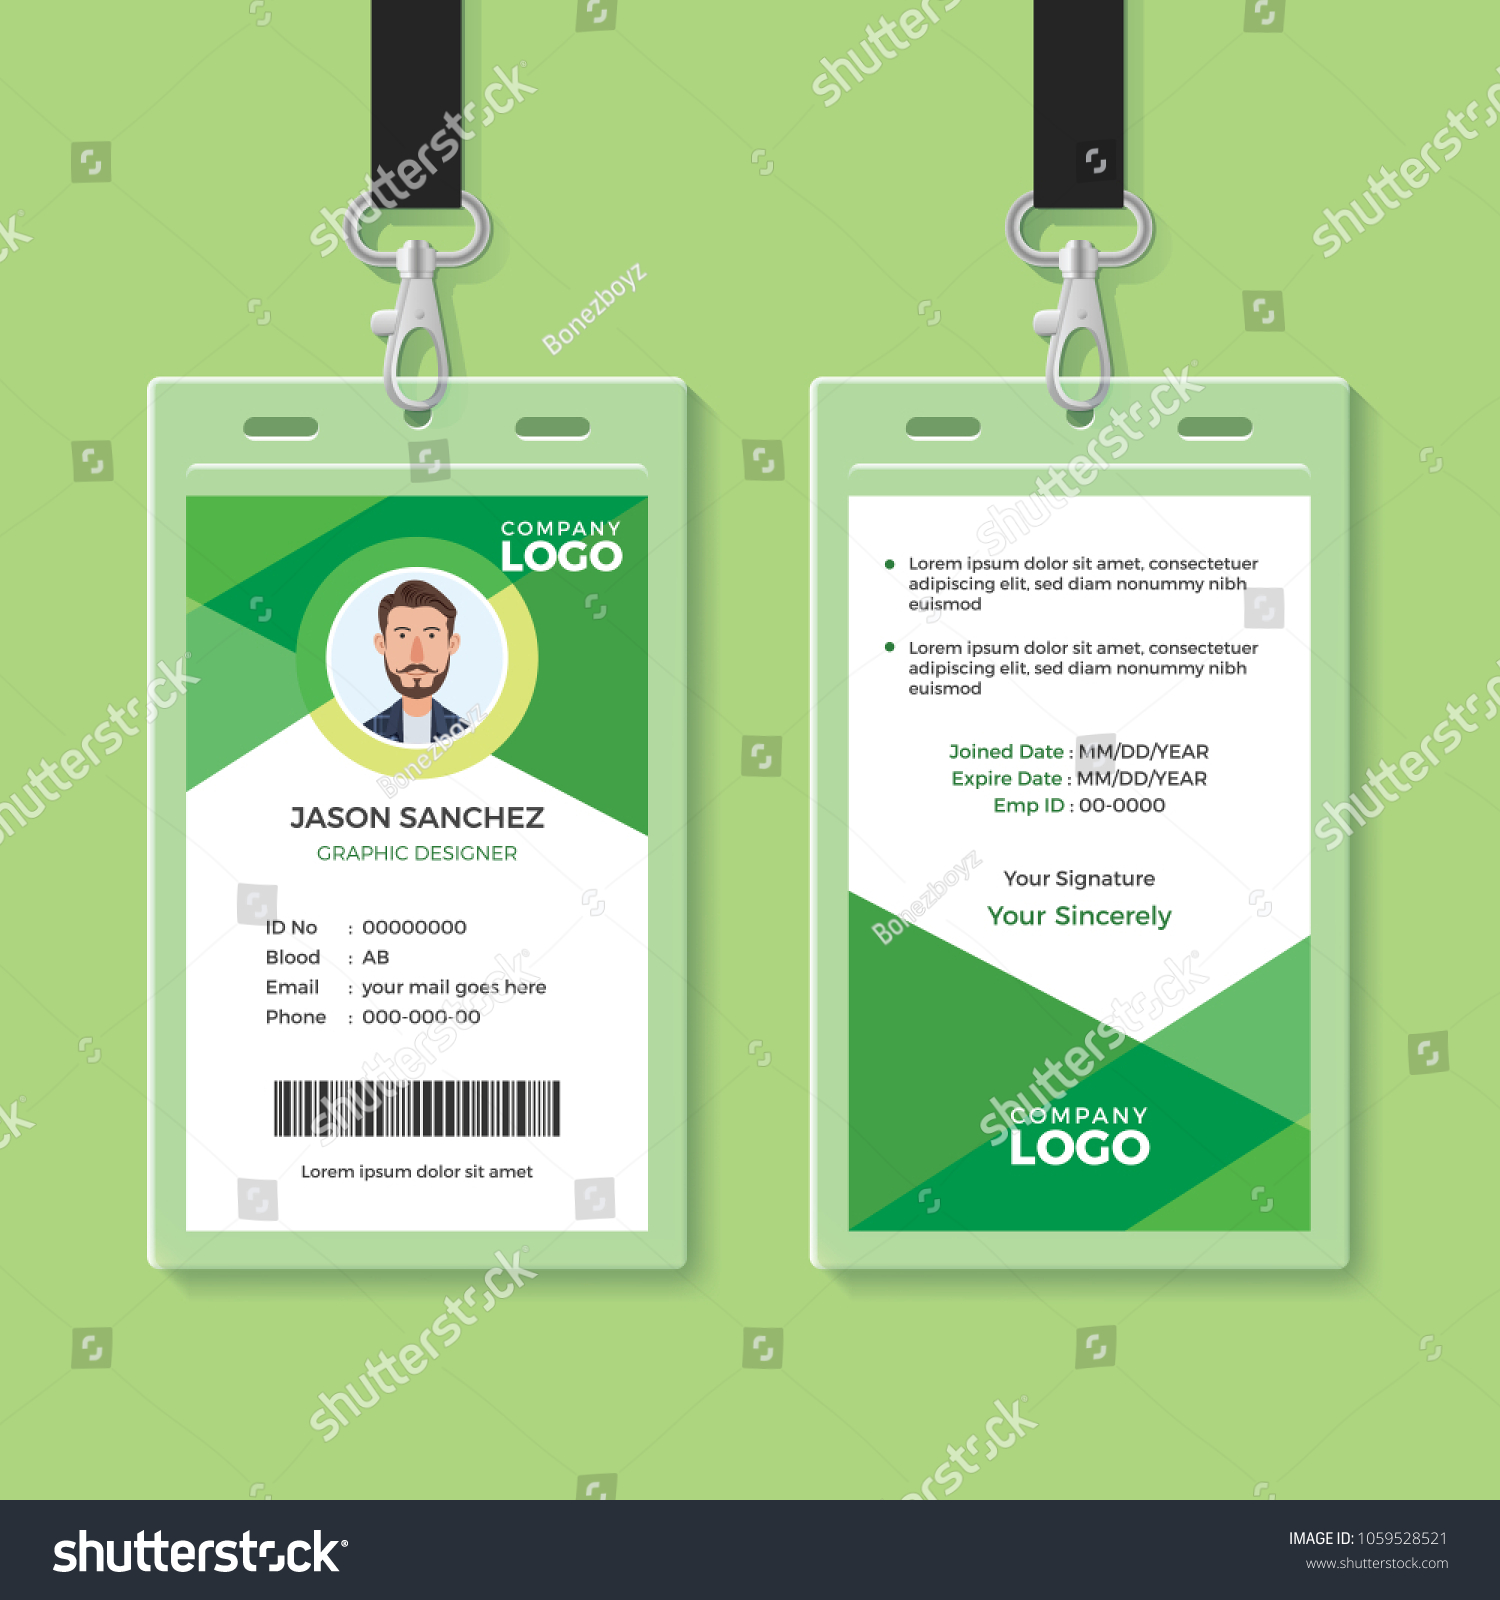 Simple Clean Green ID Card Design Stock Vector 1059528521 - Shutterstock